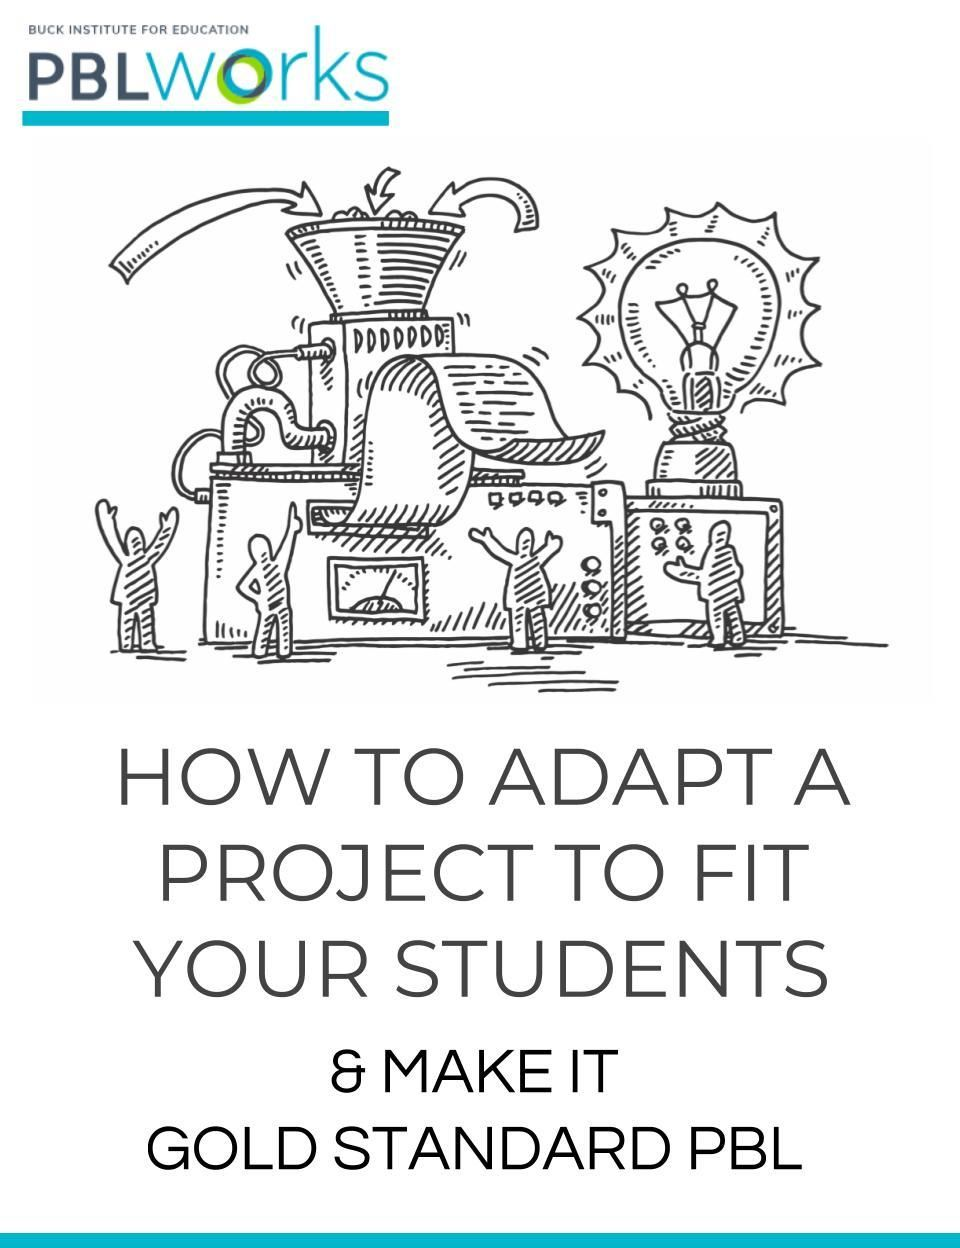 How to Adapt a Project to Fit Your Students & Make It Gold